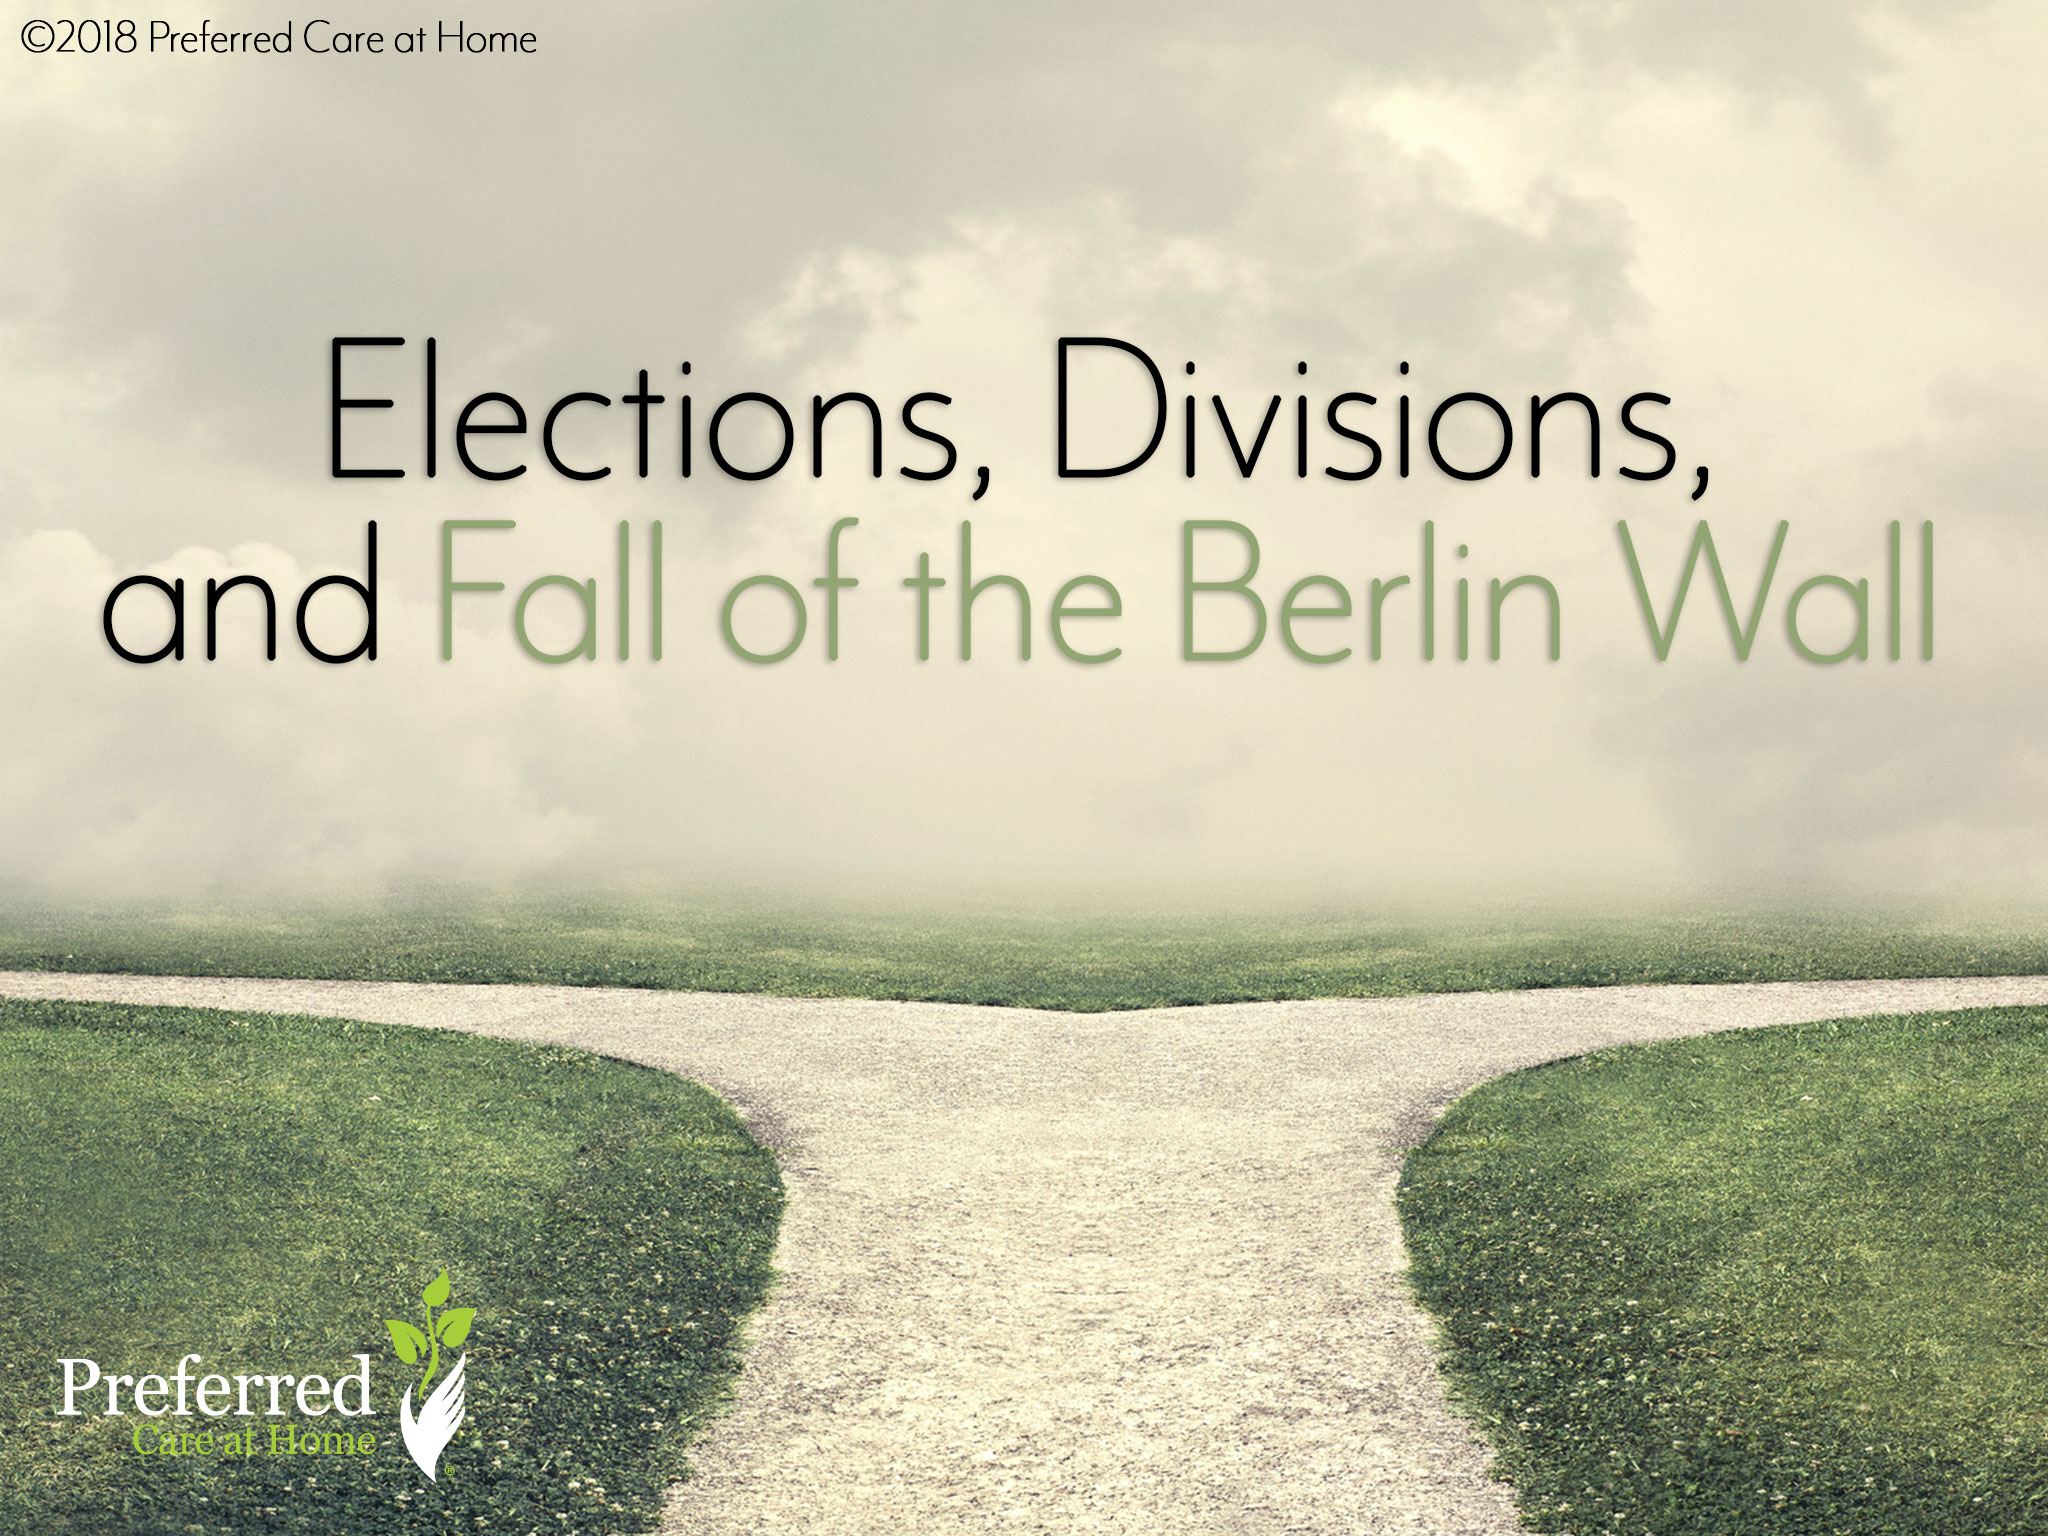 Elections, Divisions, and Fall of the Berlin Wall